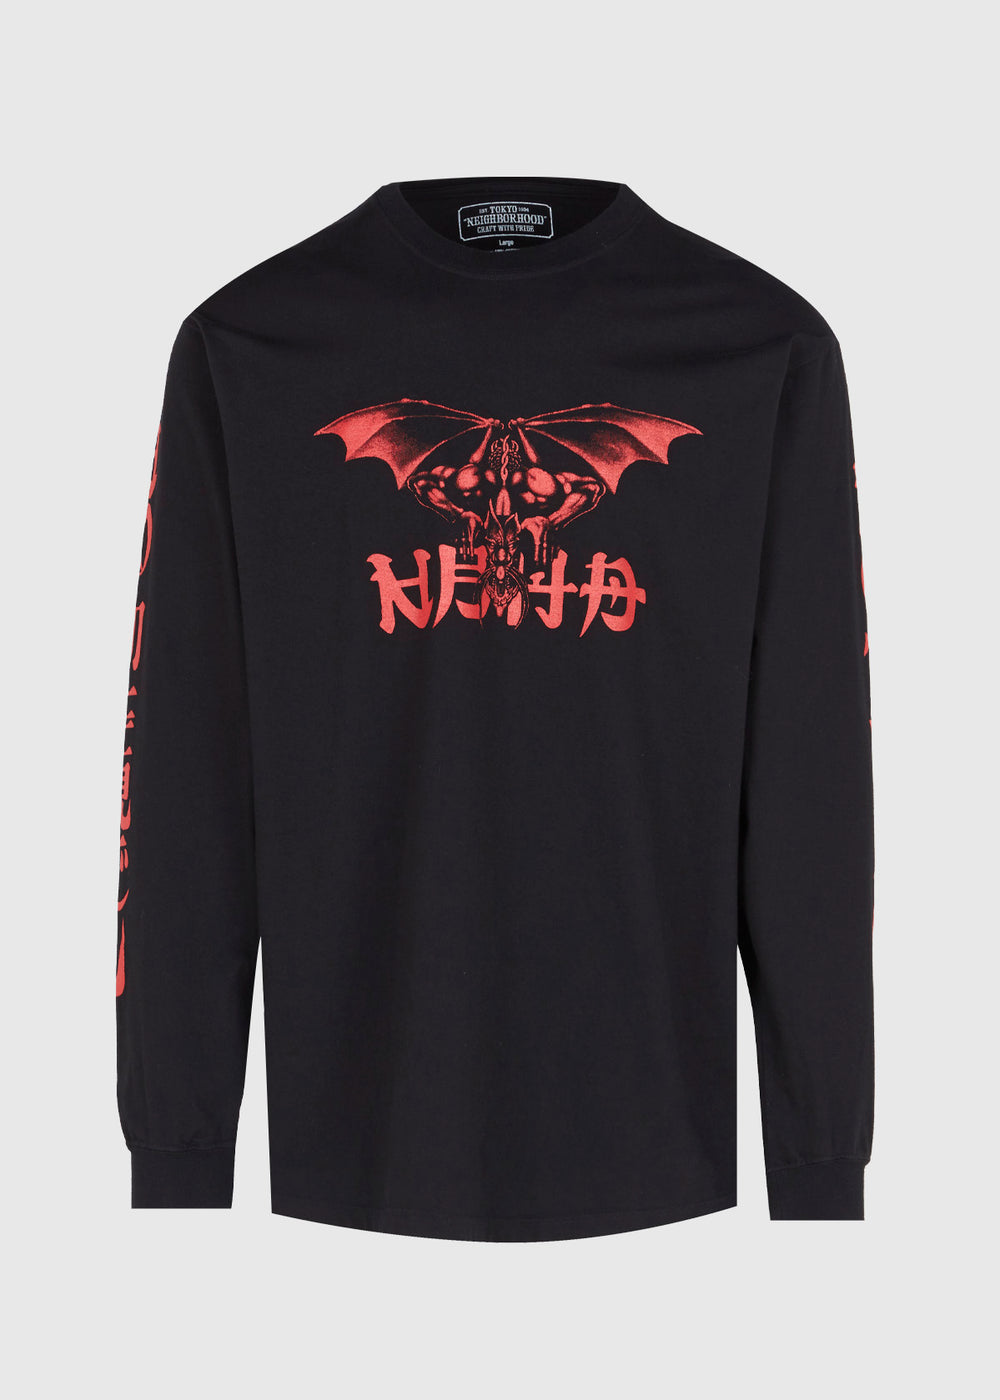 nbhd-pullover-swtr-192pcnh-lt01-blk-red-blk-red-1